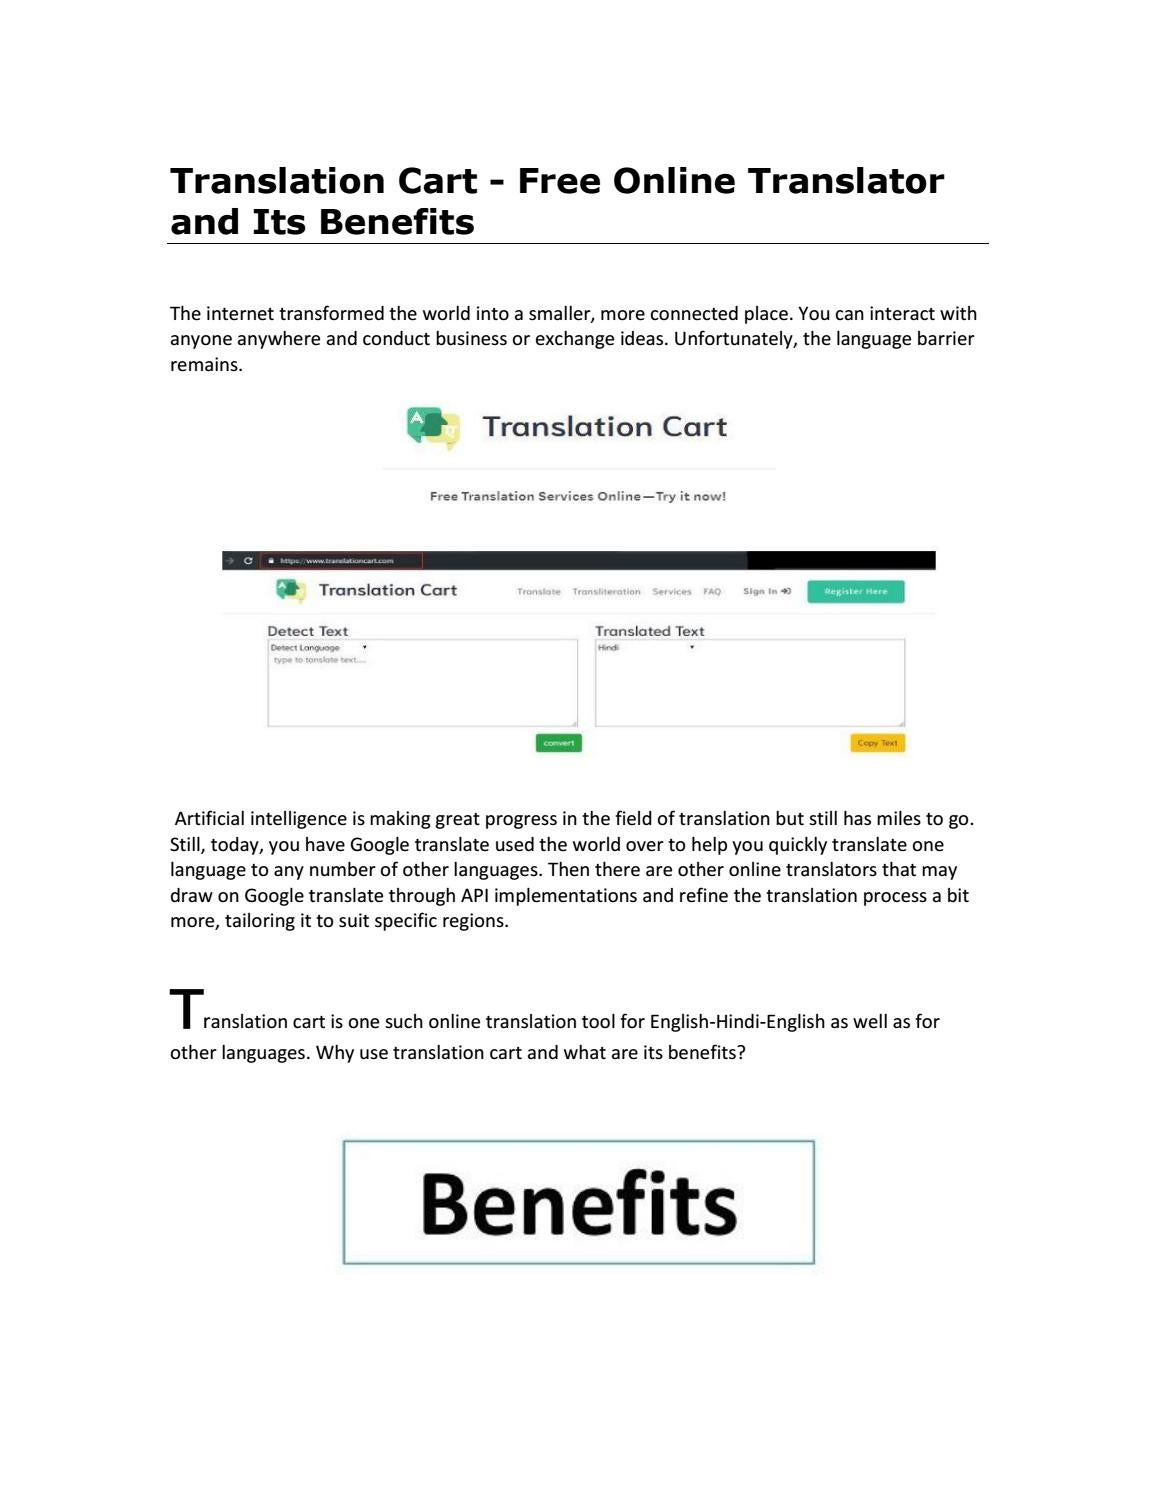 Translation Cart - Free Online Translator and Its Benefits